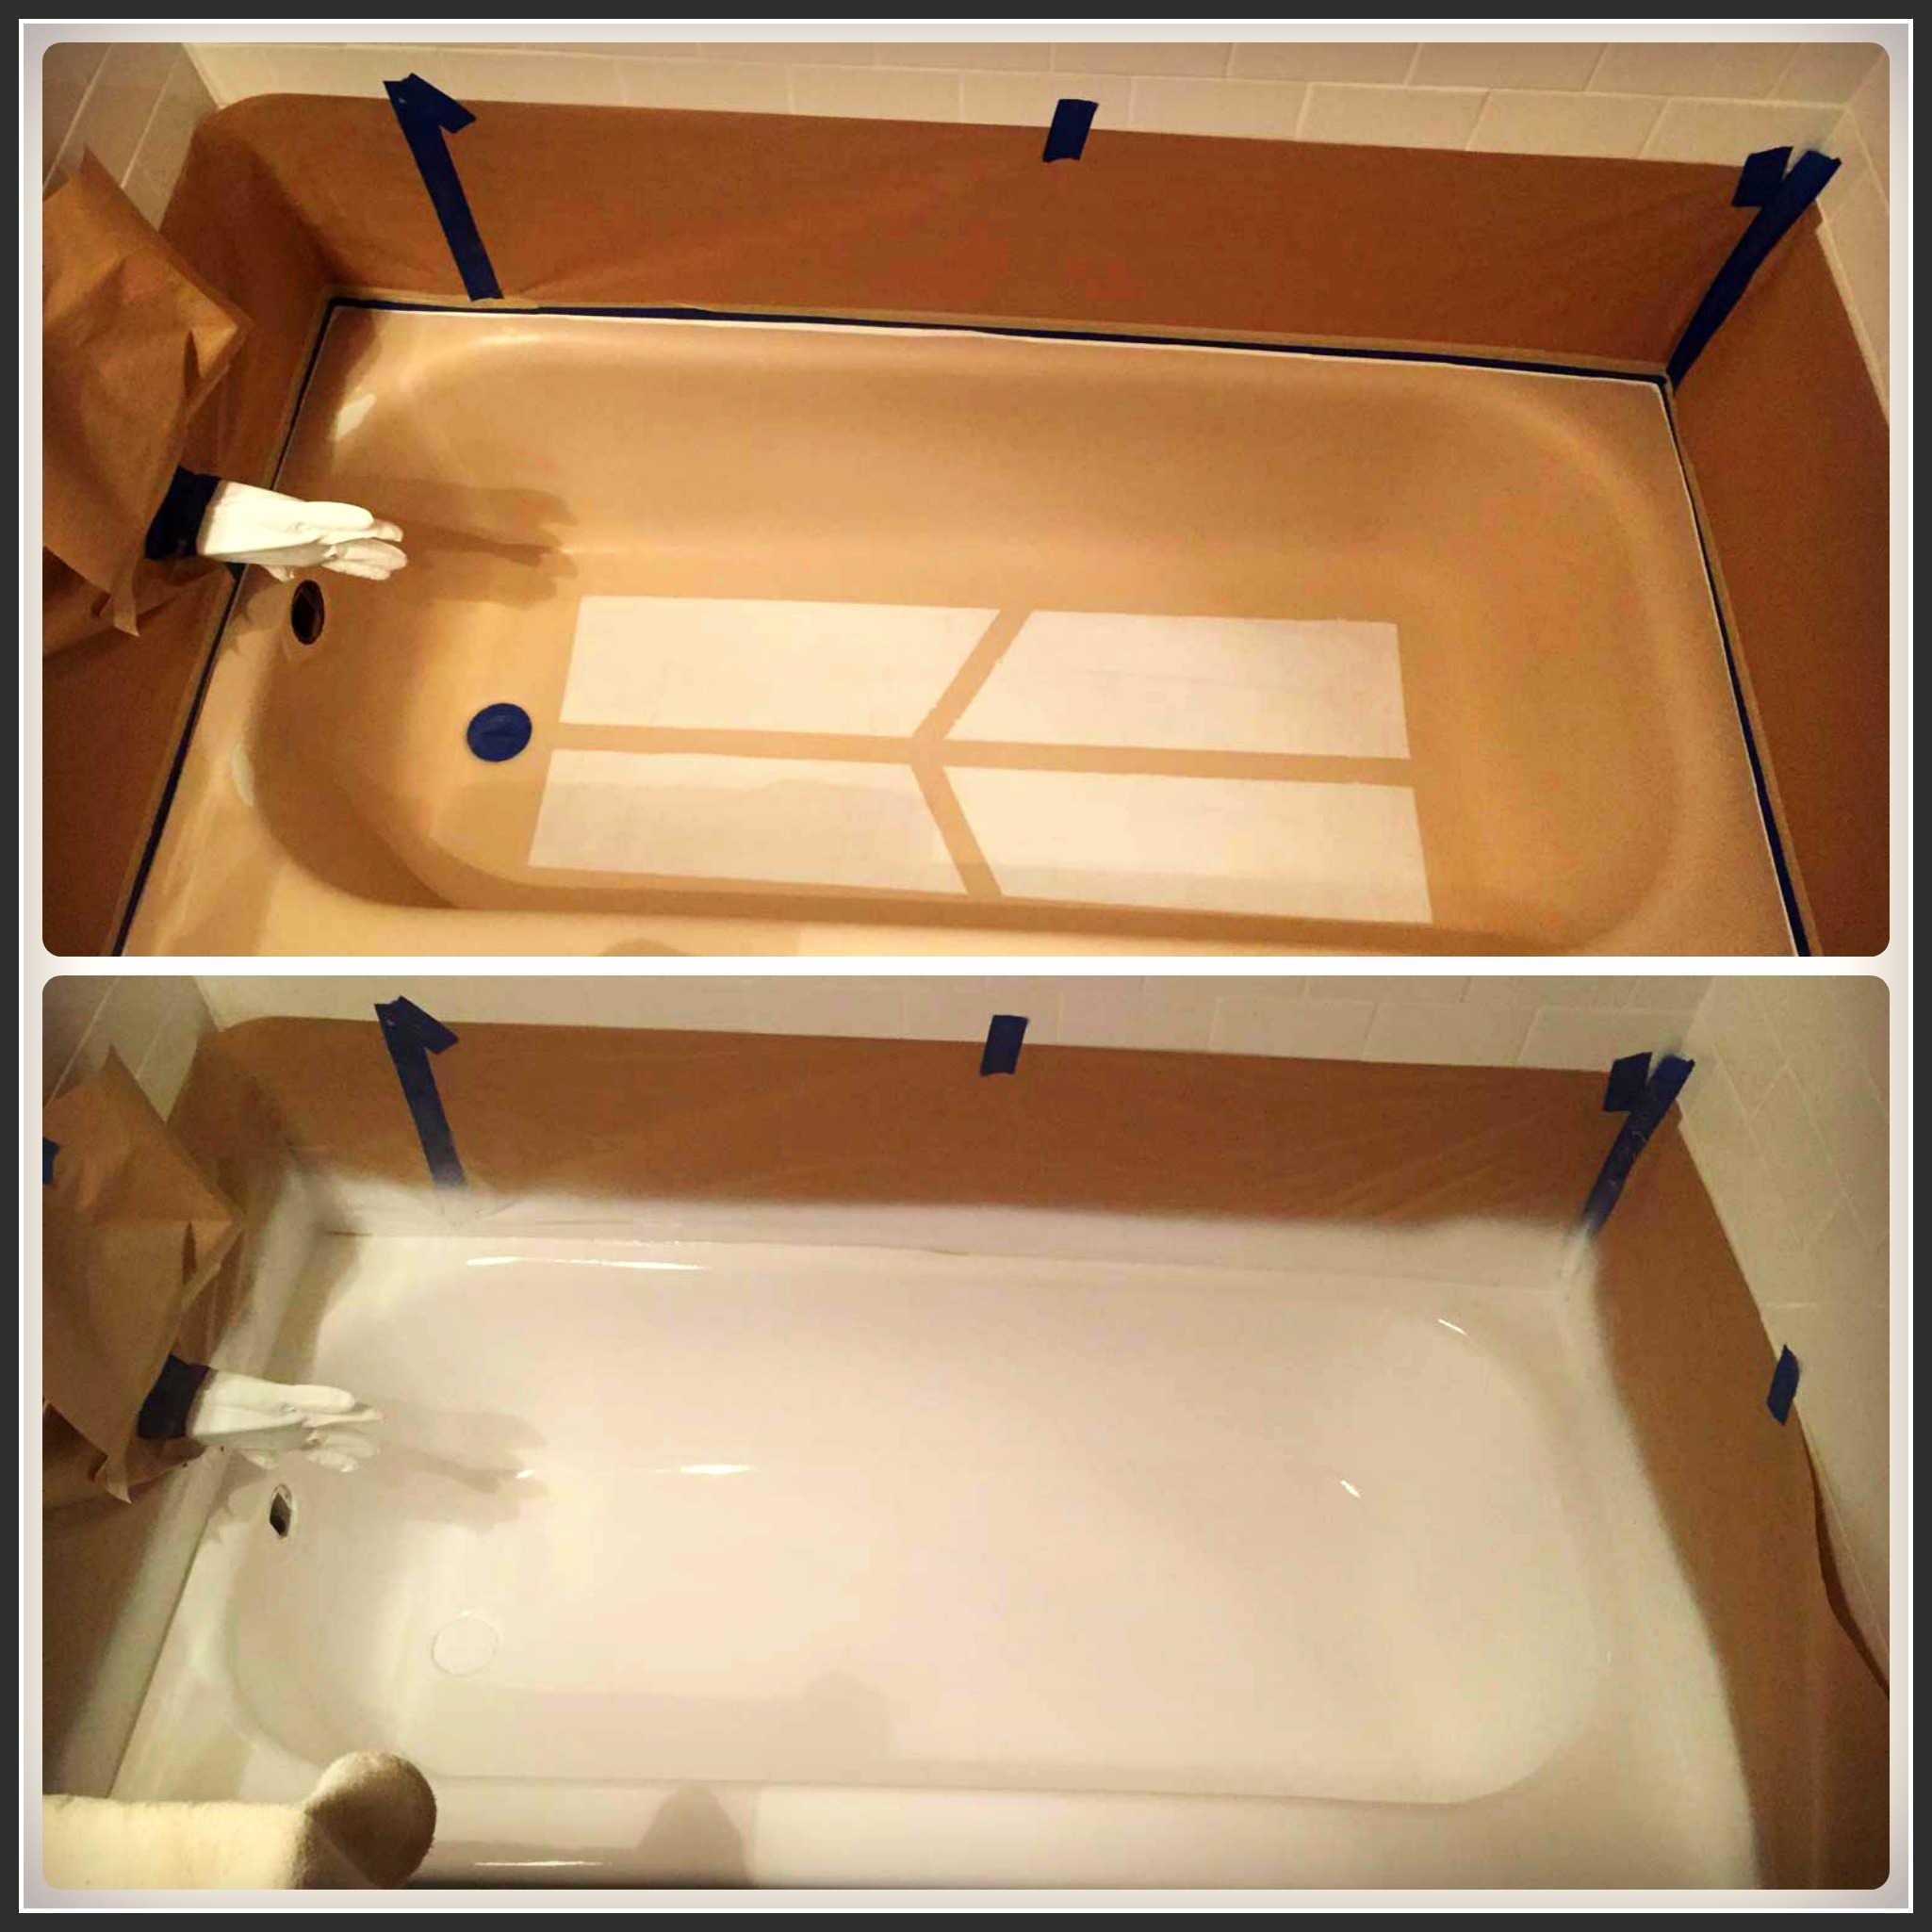 Refinished bathtub